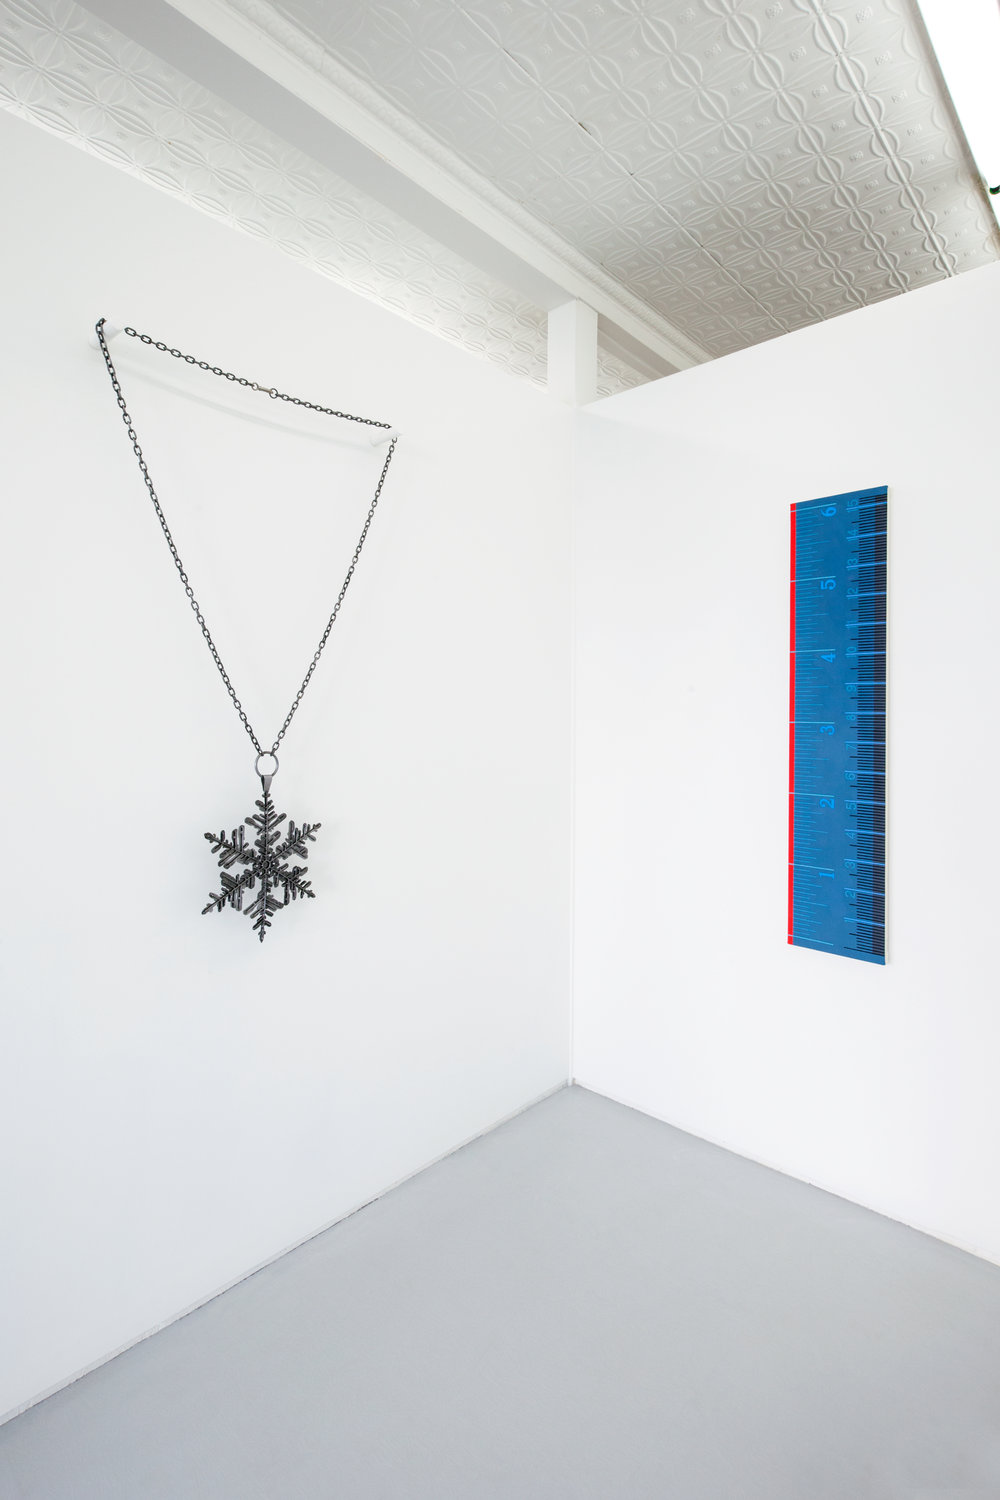 Nick_Doyle-Soft_Arrest-Installation_View-Mrs-11.jpg